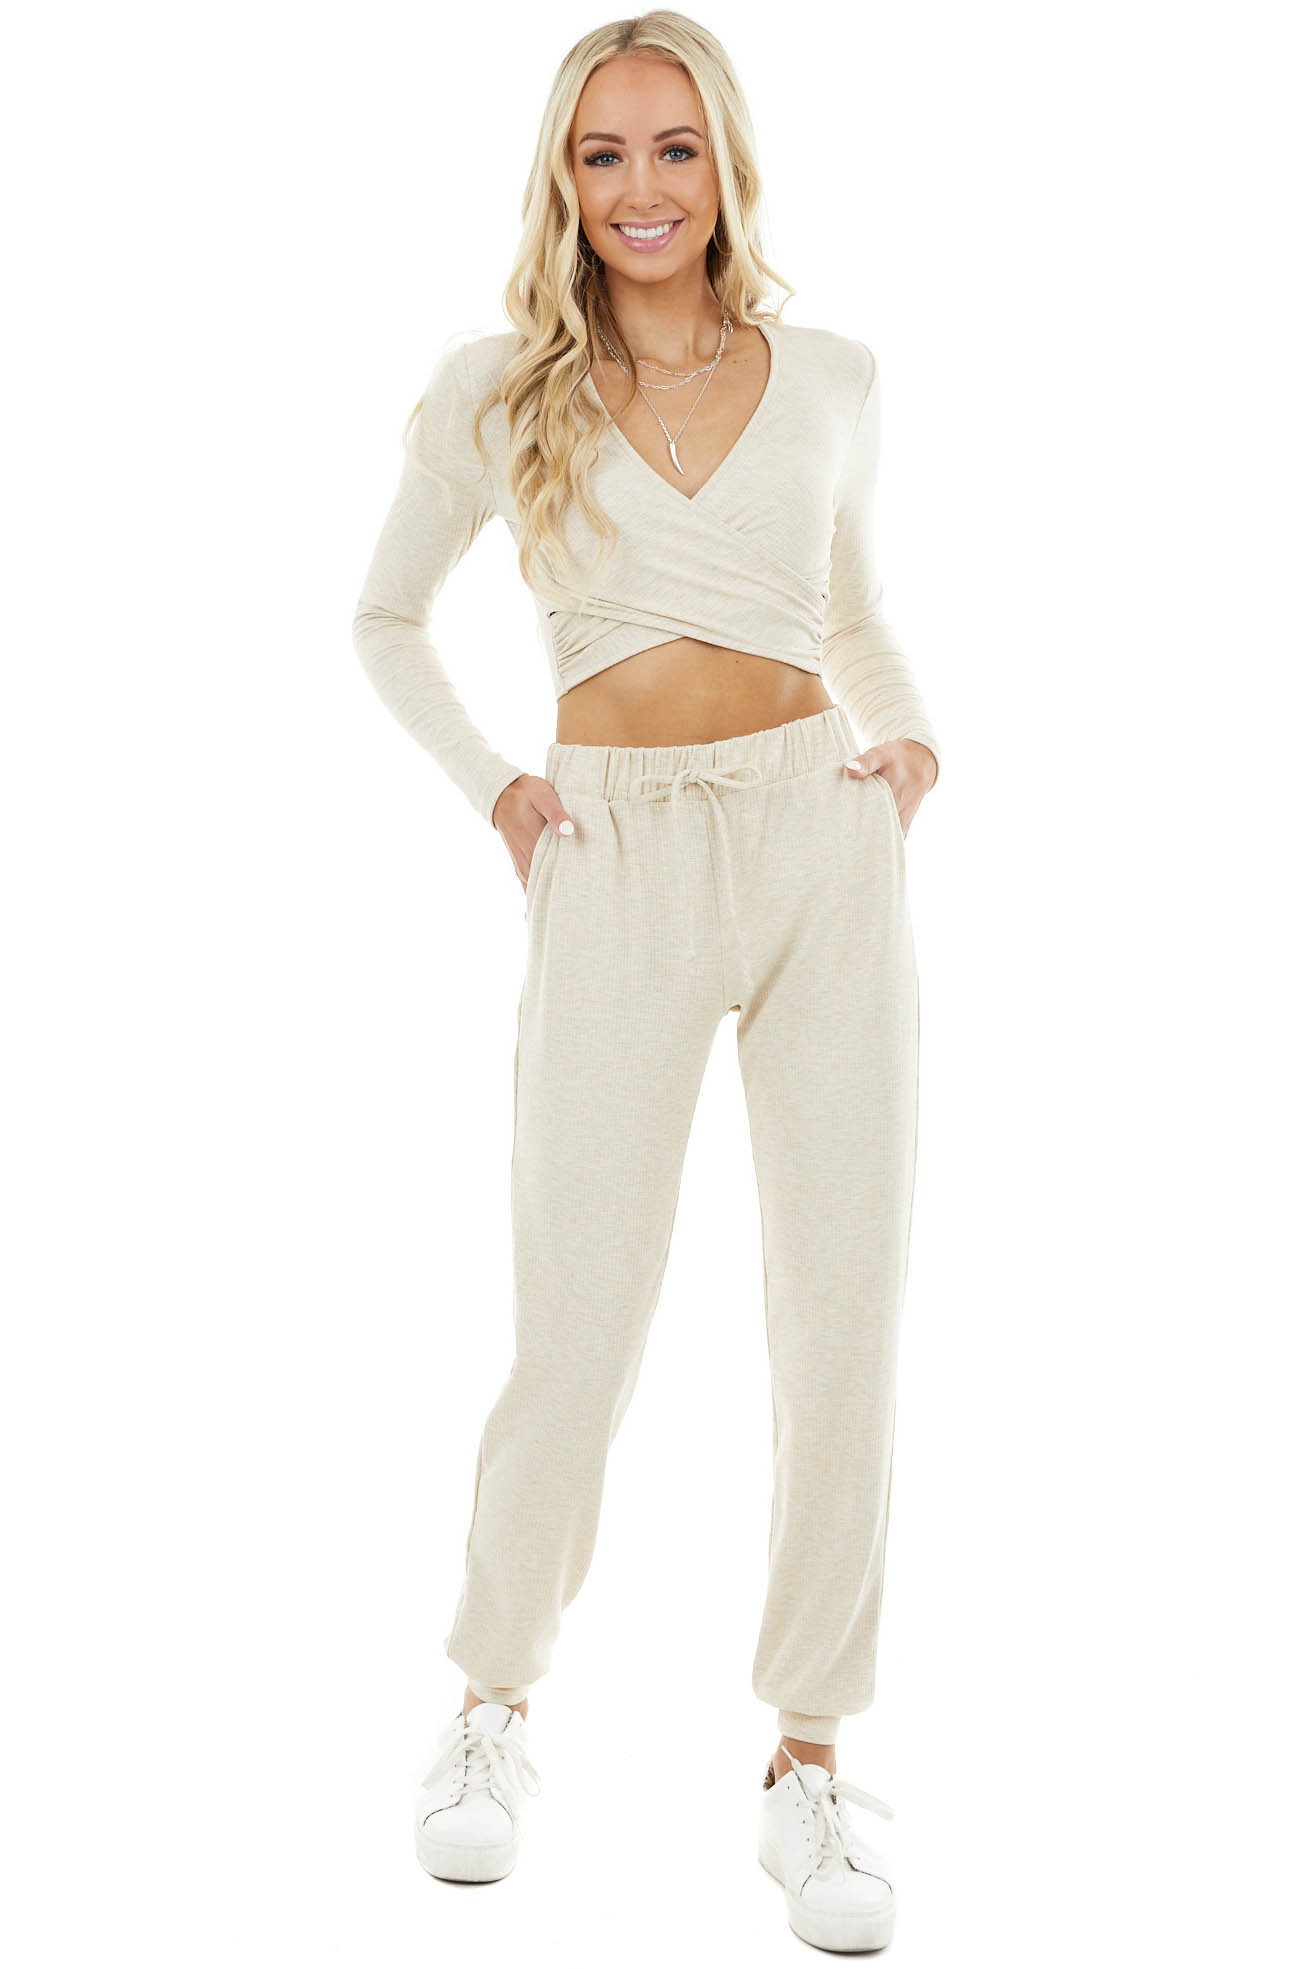 Oatmeal Cross Front Ribbed Knit Crop Top with Long Sleeves